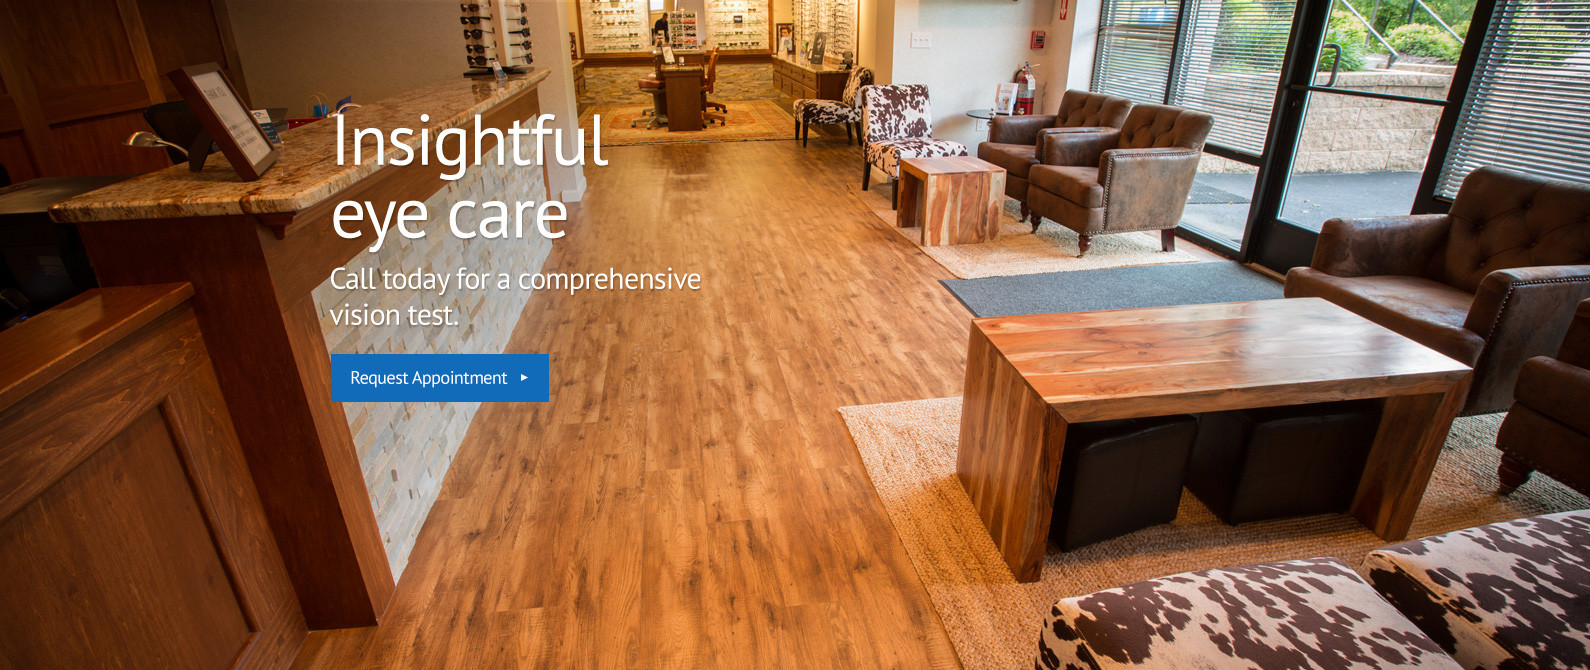 pg model hardwood flooring reviews of seraly eye care associates optometry in mcmurray pa usa home inside banner slide3